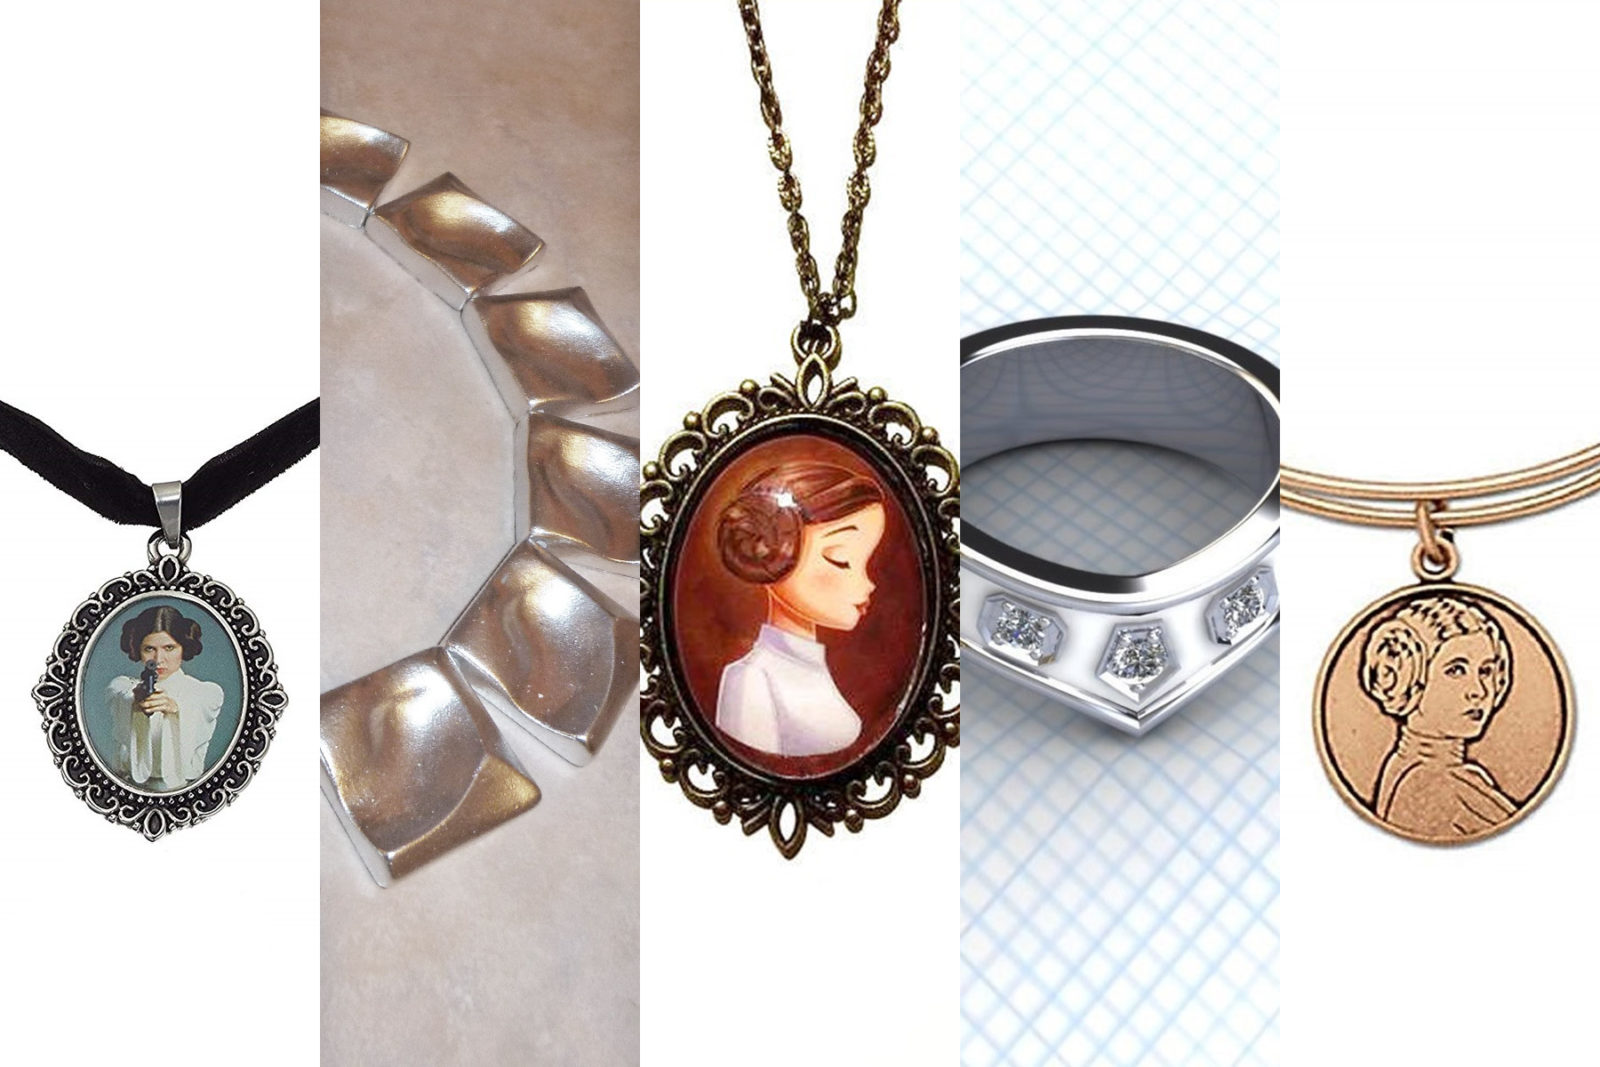 Leia's List – Princess Leia Themed Jewelry